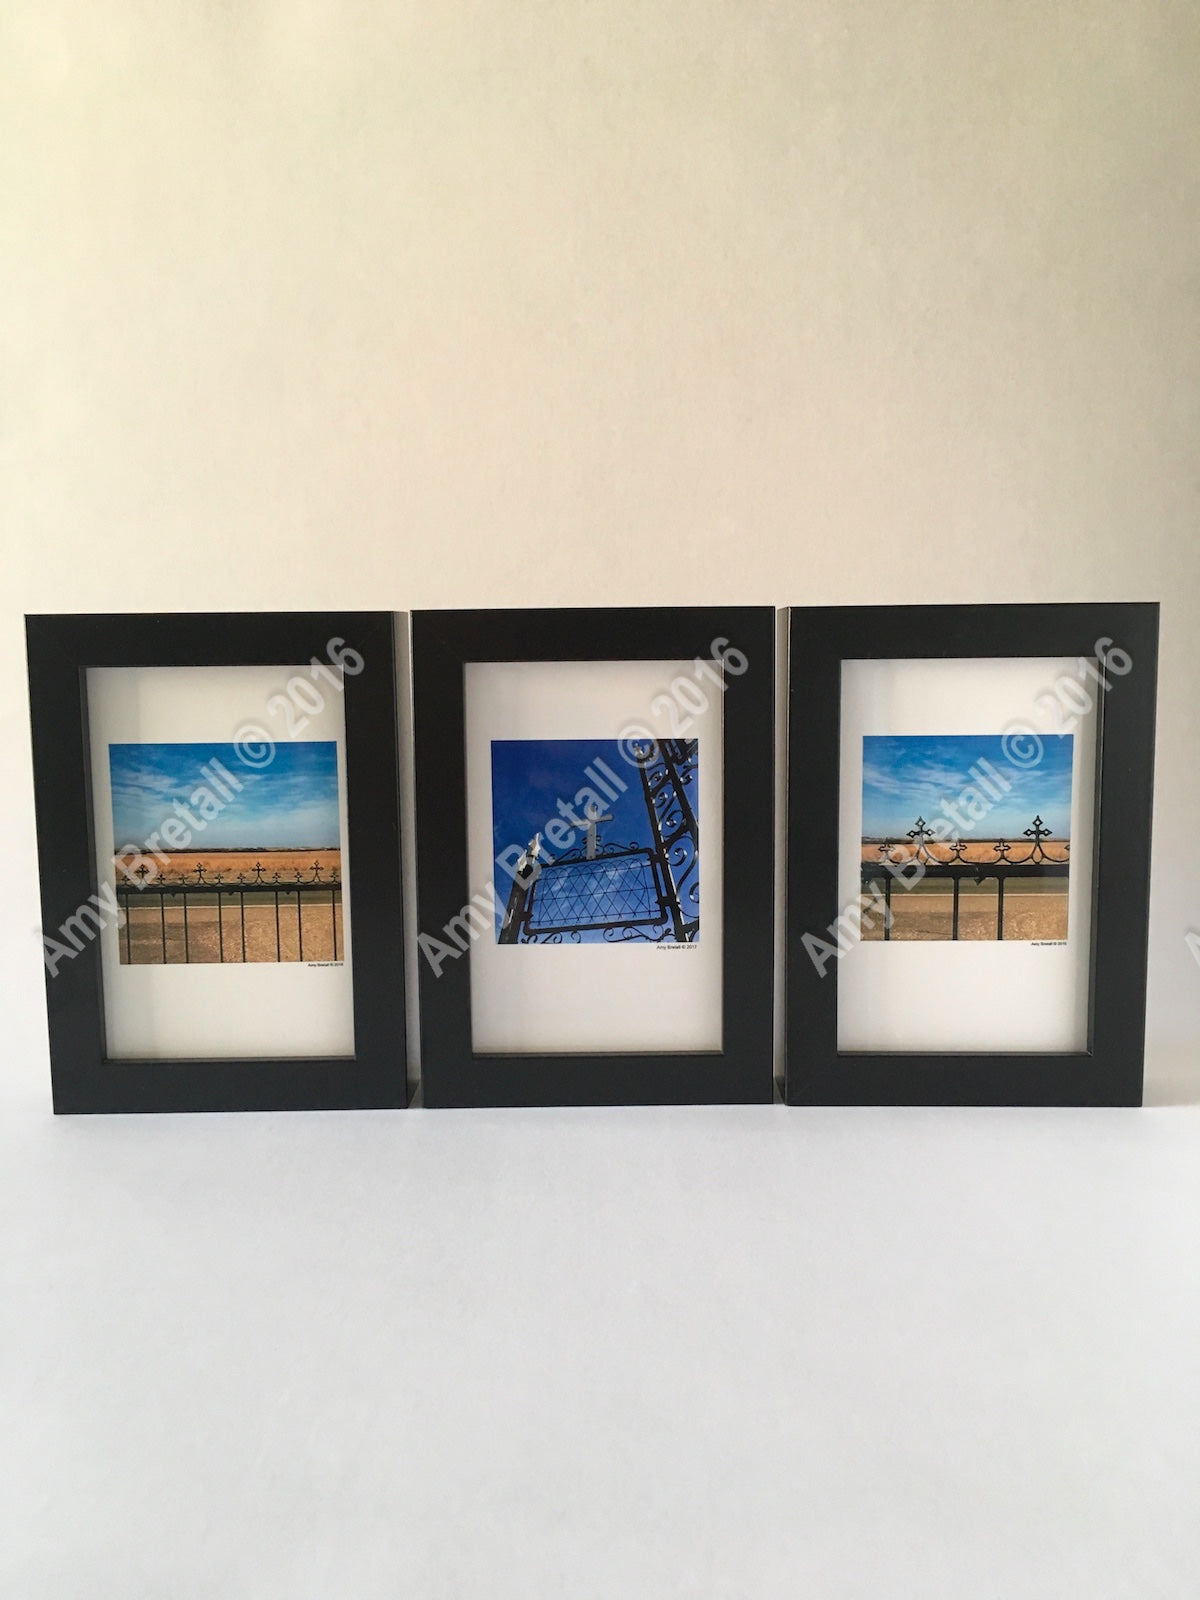 Christian gifts of a set of three cross photography frames